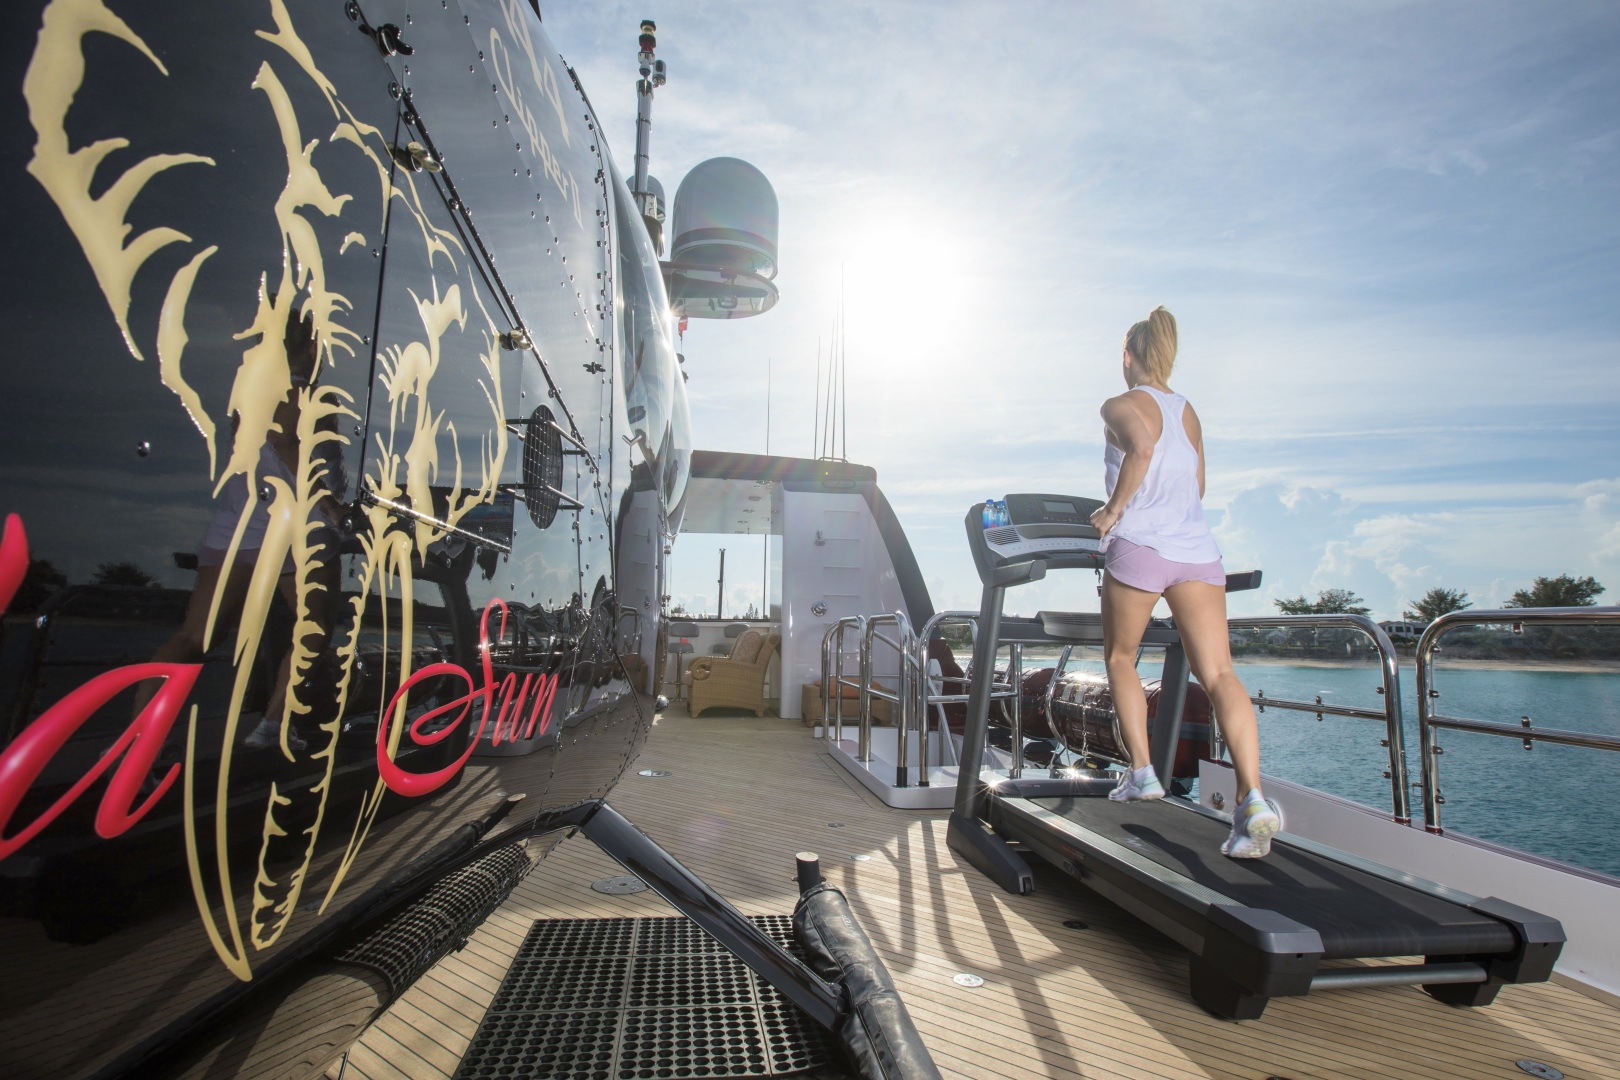 Trinity Yachts-164 Tri-deck Motor Yacht 2008-Amarula Sun Fort Lauderdale-Florida-United States-Exercise Equipment On Deck-1513906 | Thumbnail